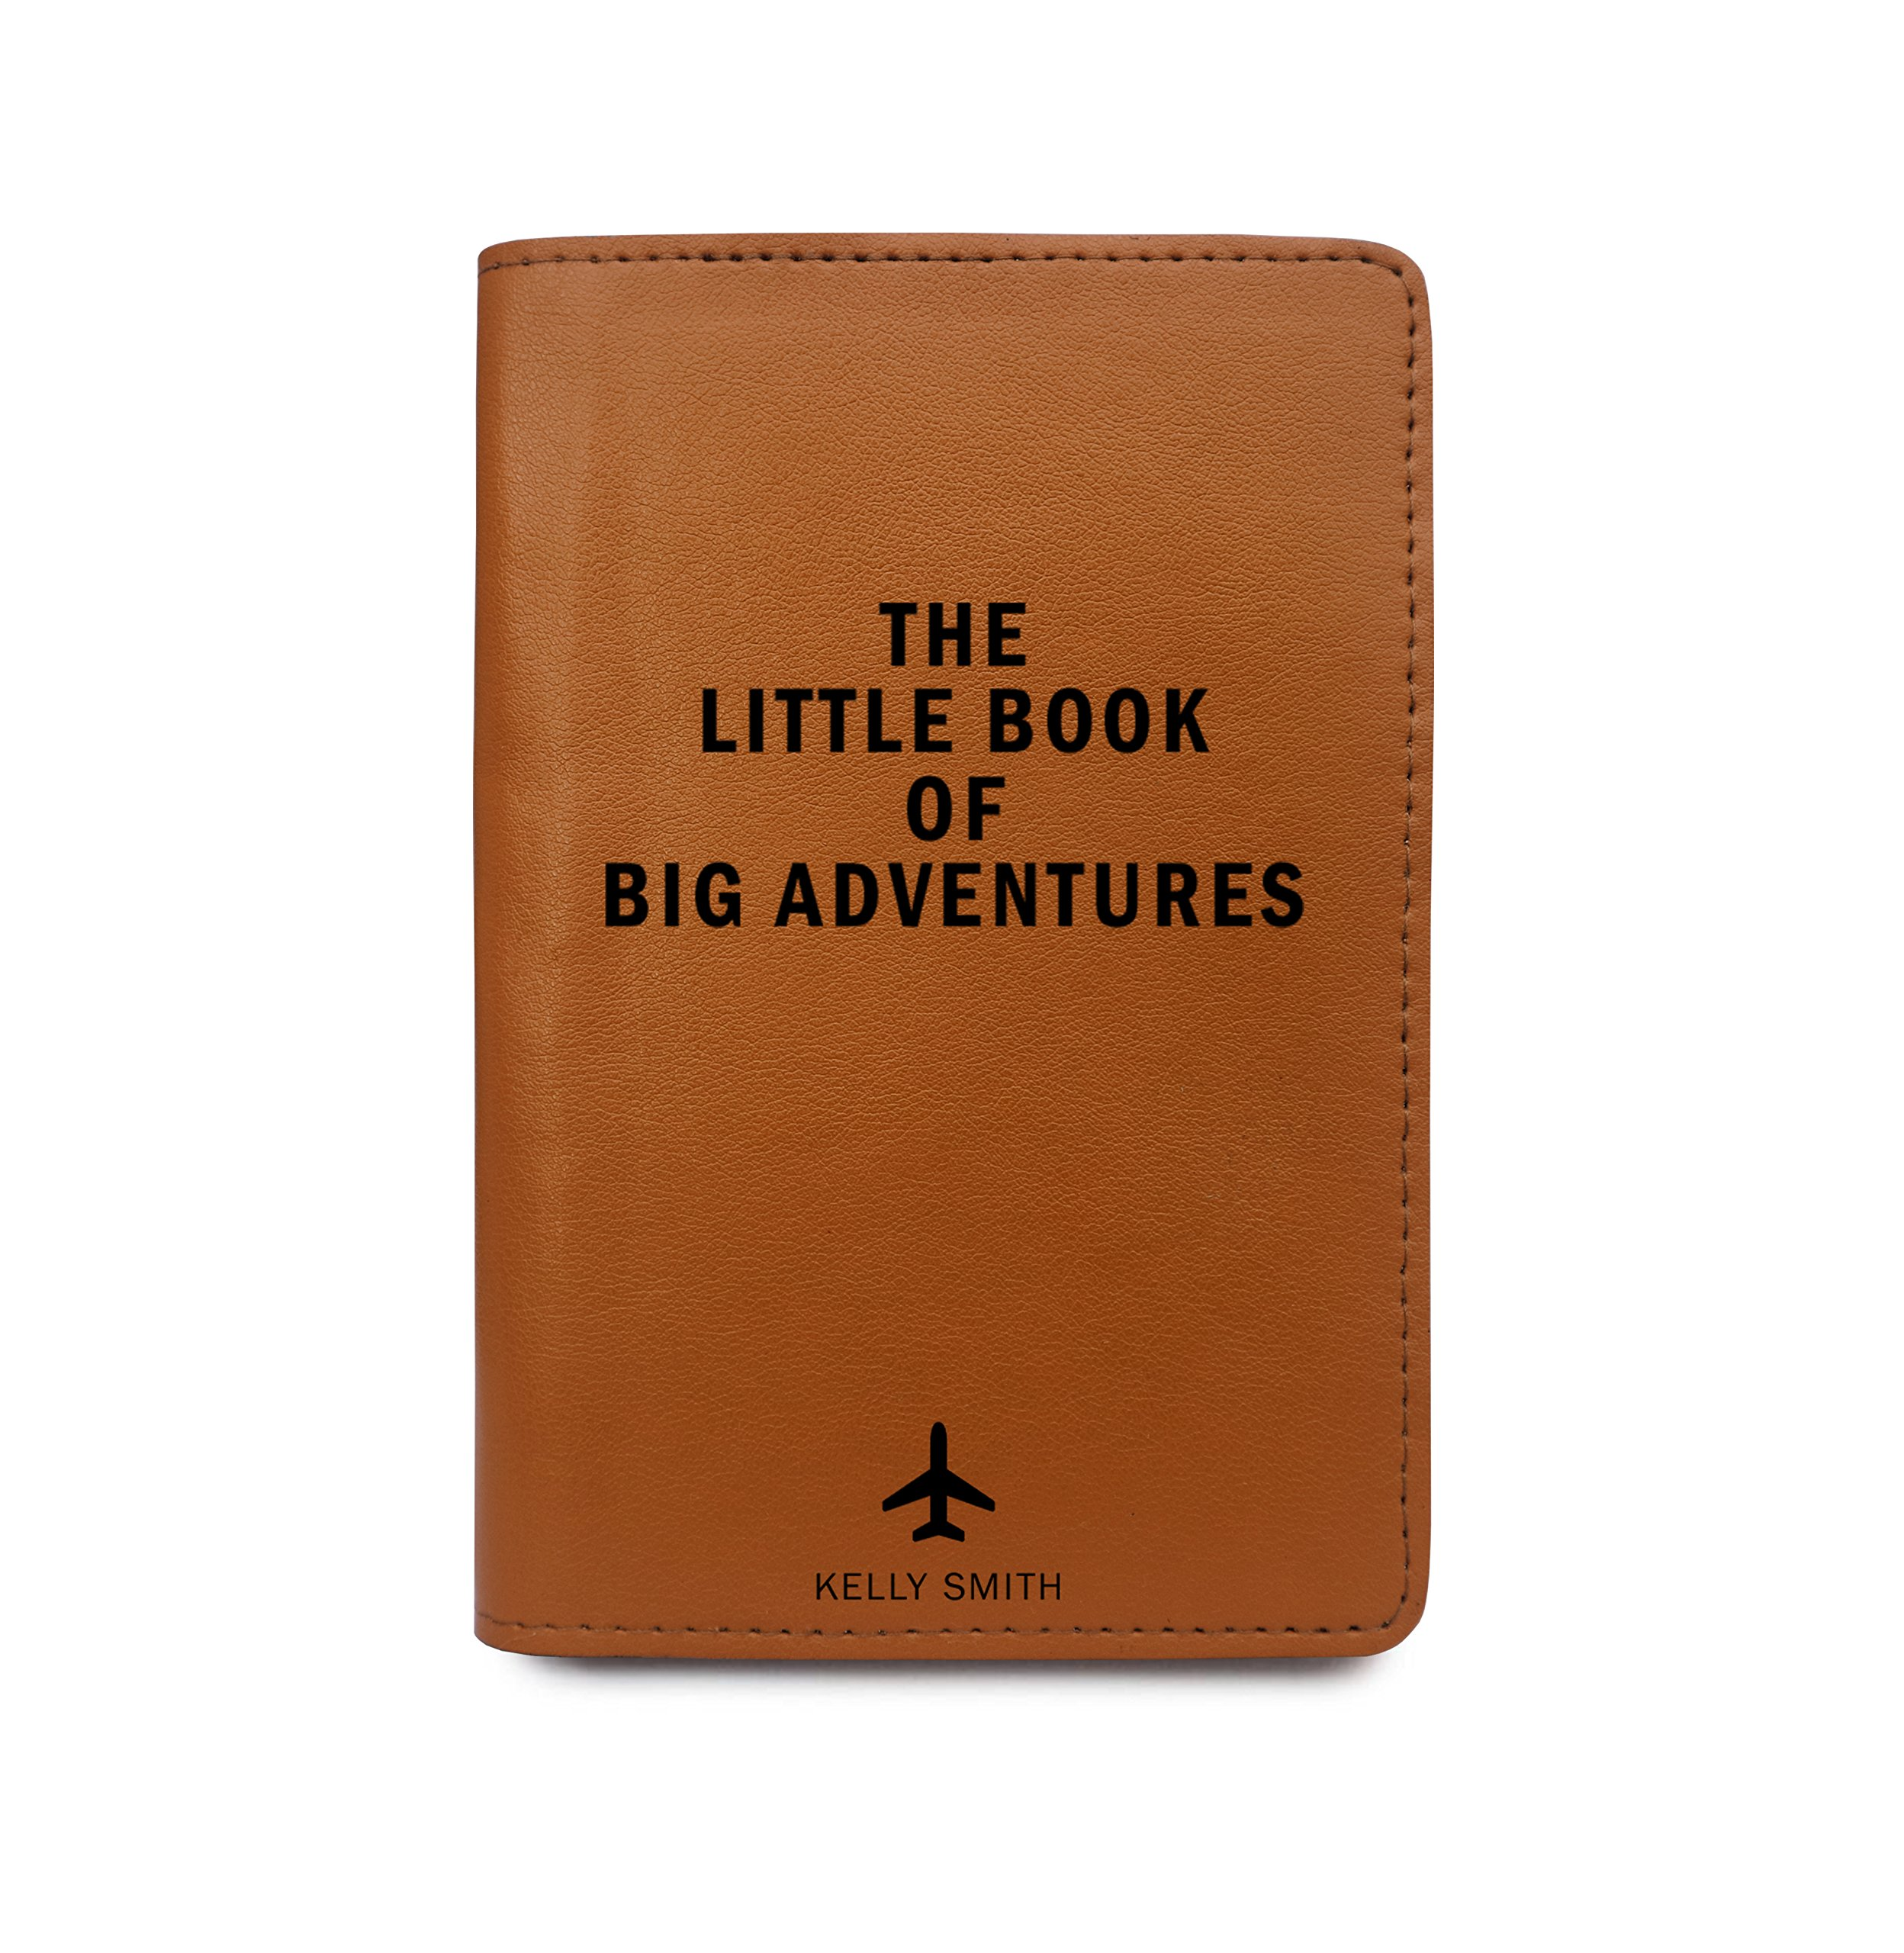 Personalized Leather Passport Cover Wallet - The Little Book Of Big Adventures by With Love From Julie (Image #1)